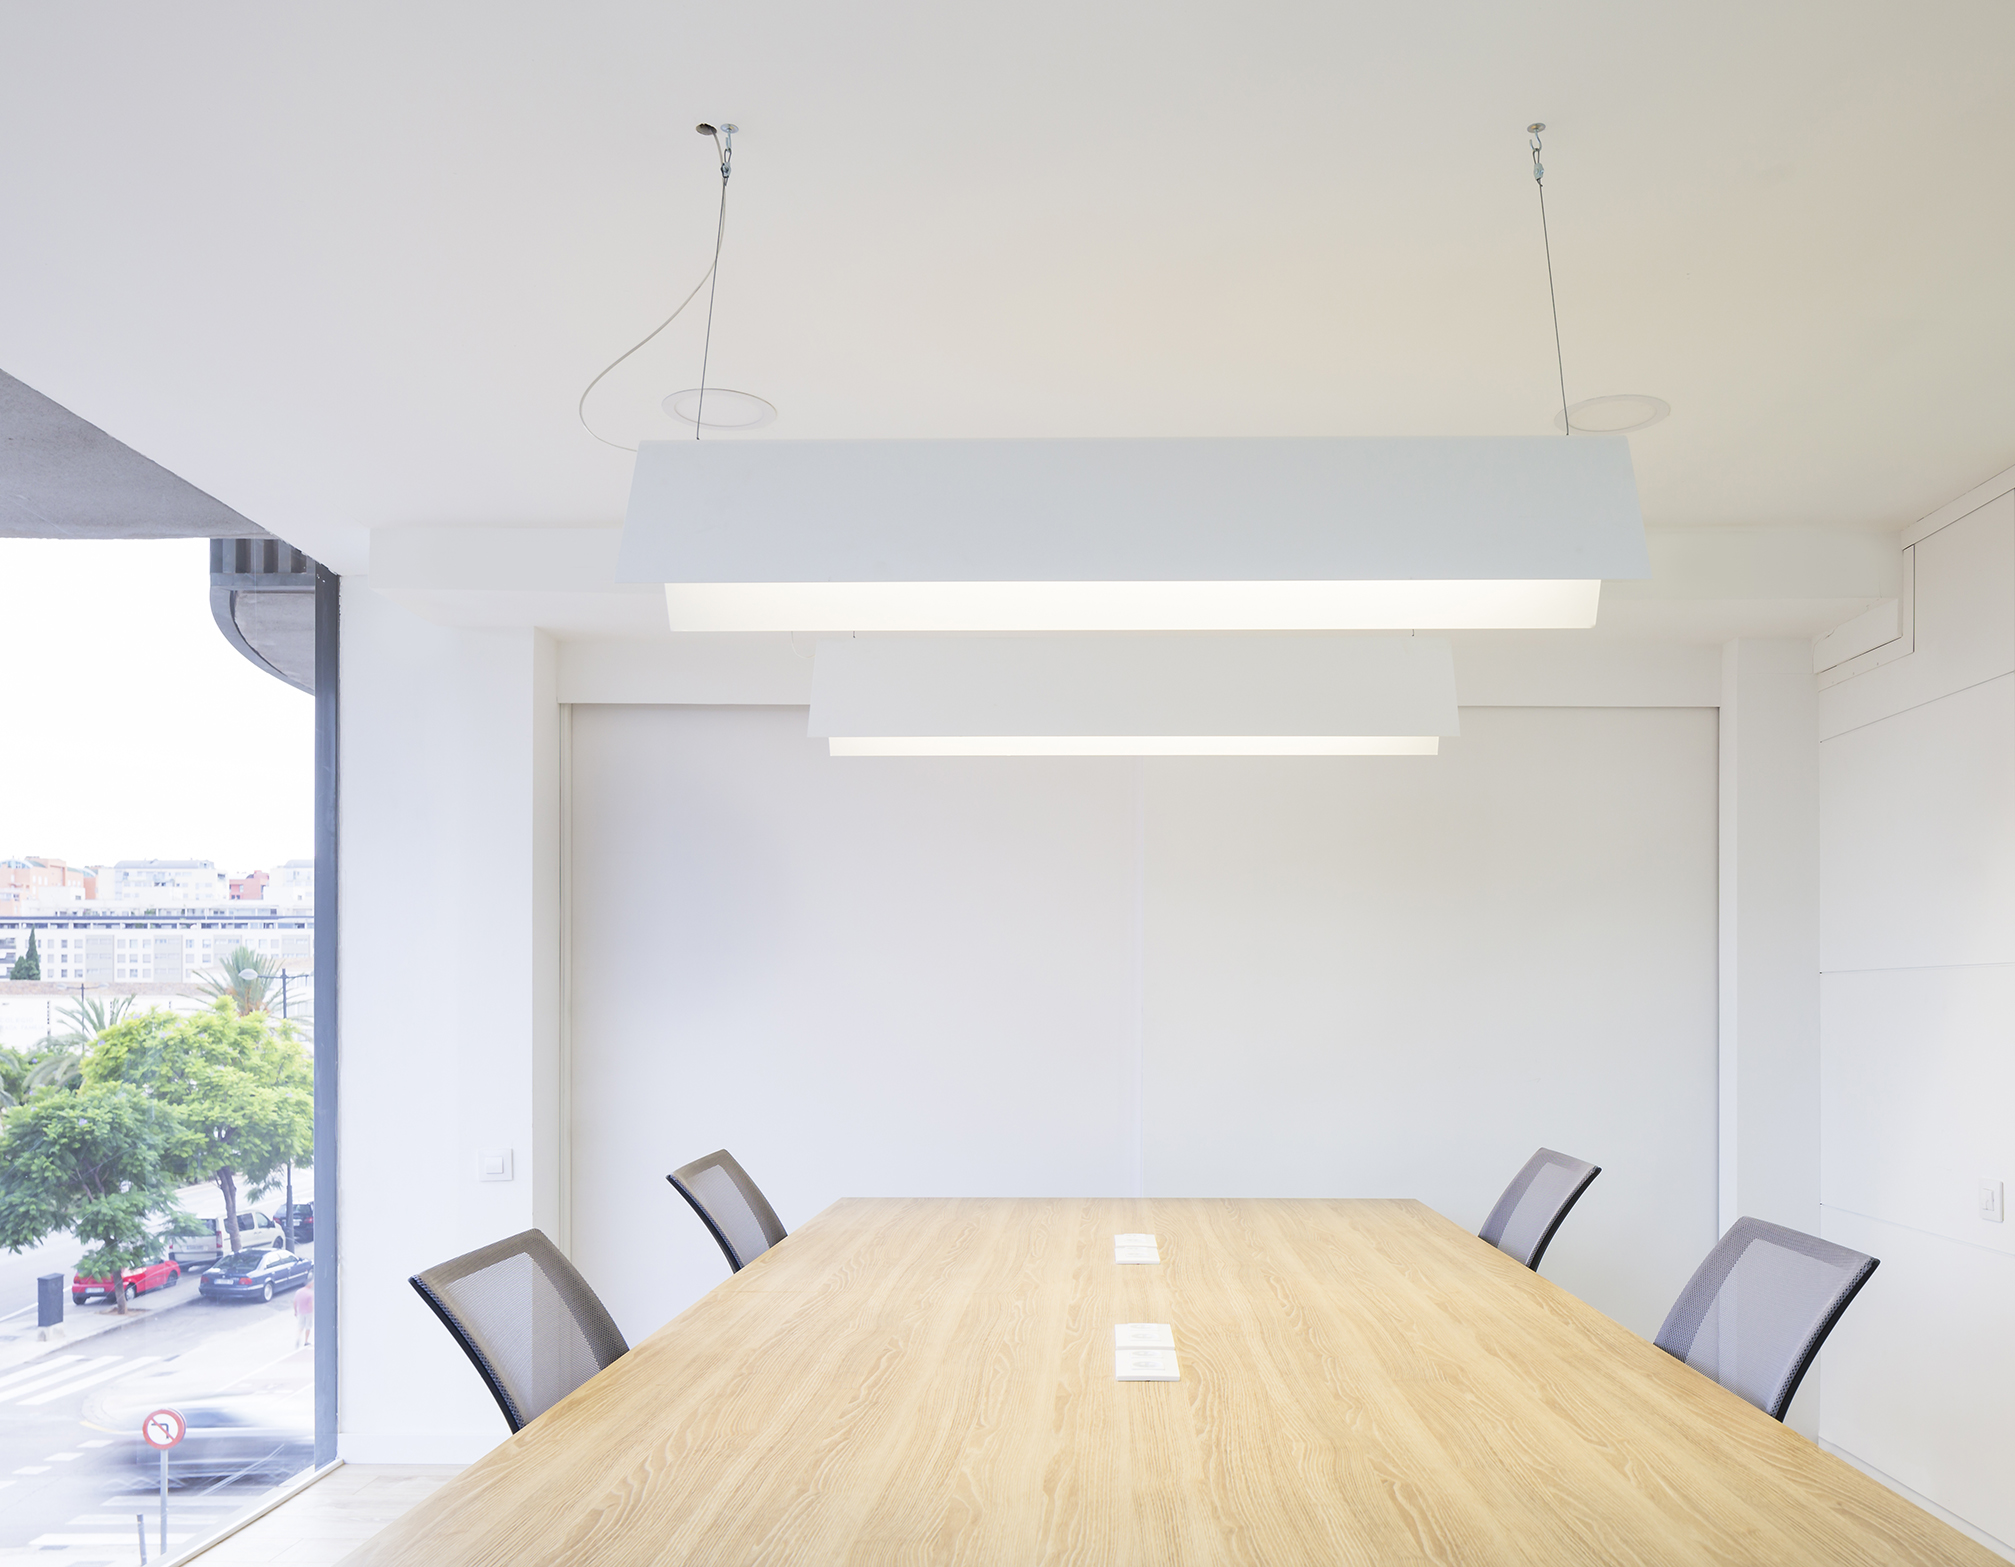 clap-studio-office-design-interior-lamp-design